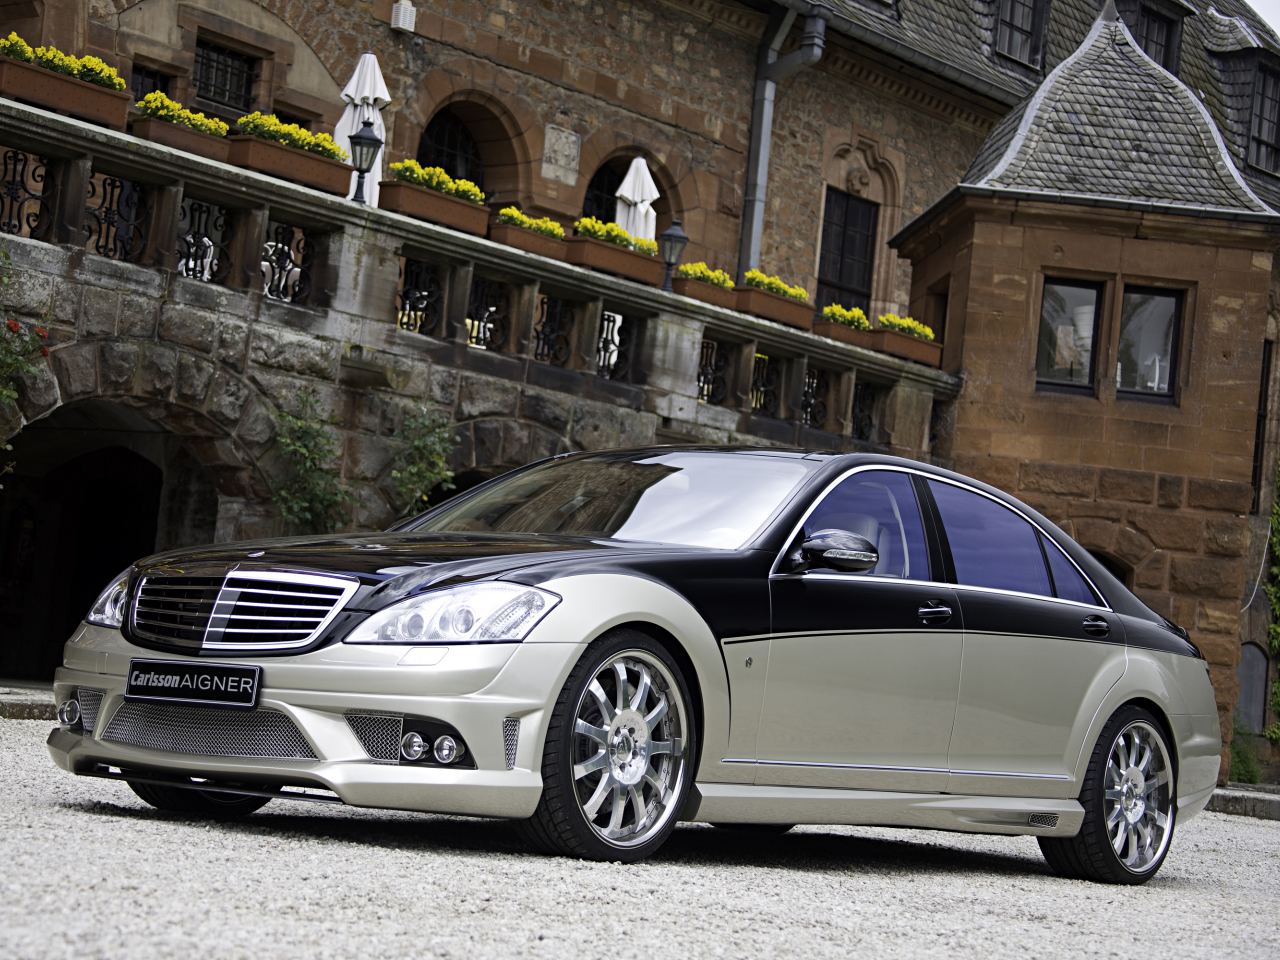 Carlsson Aigner CK35 RS Blanchimont basing on the Mercedes S-class